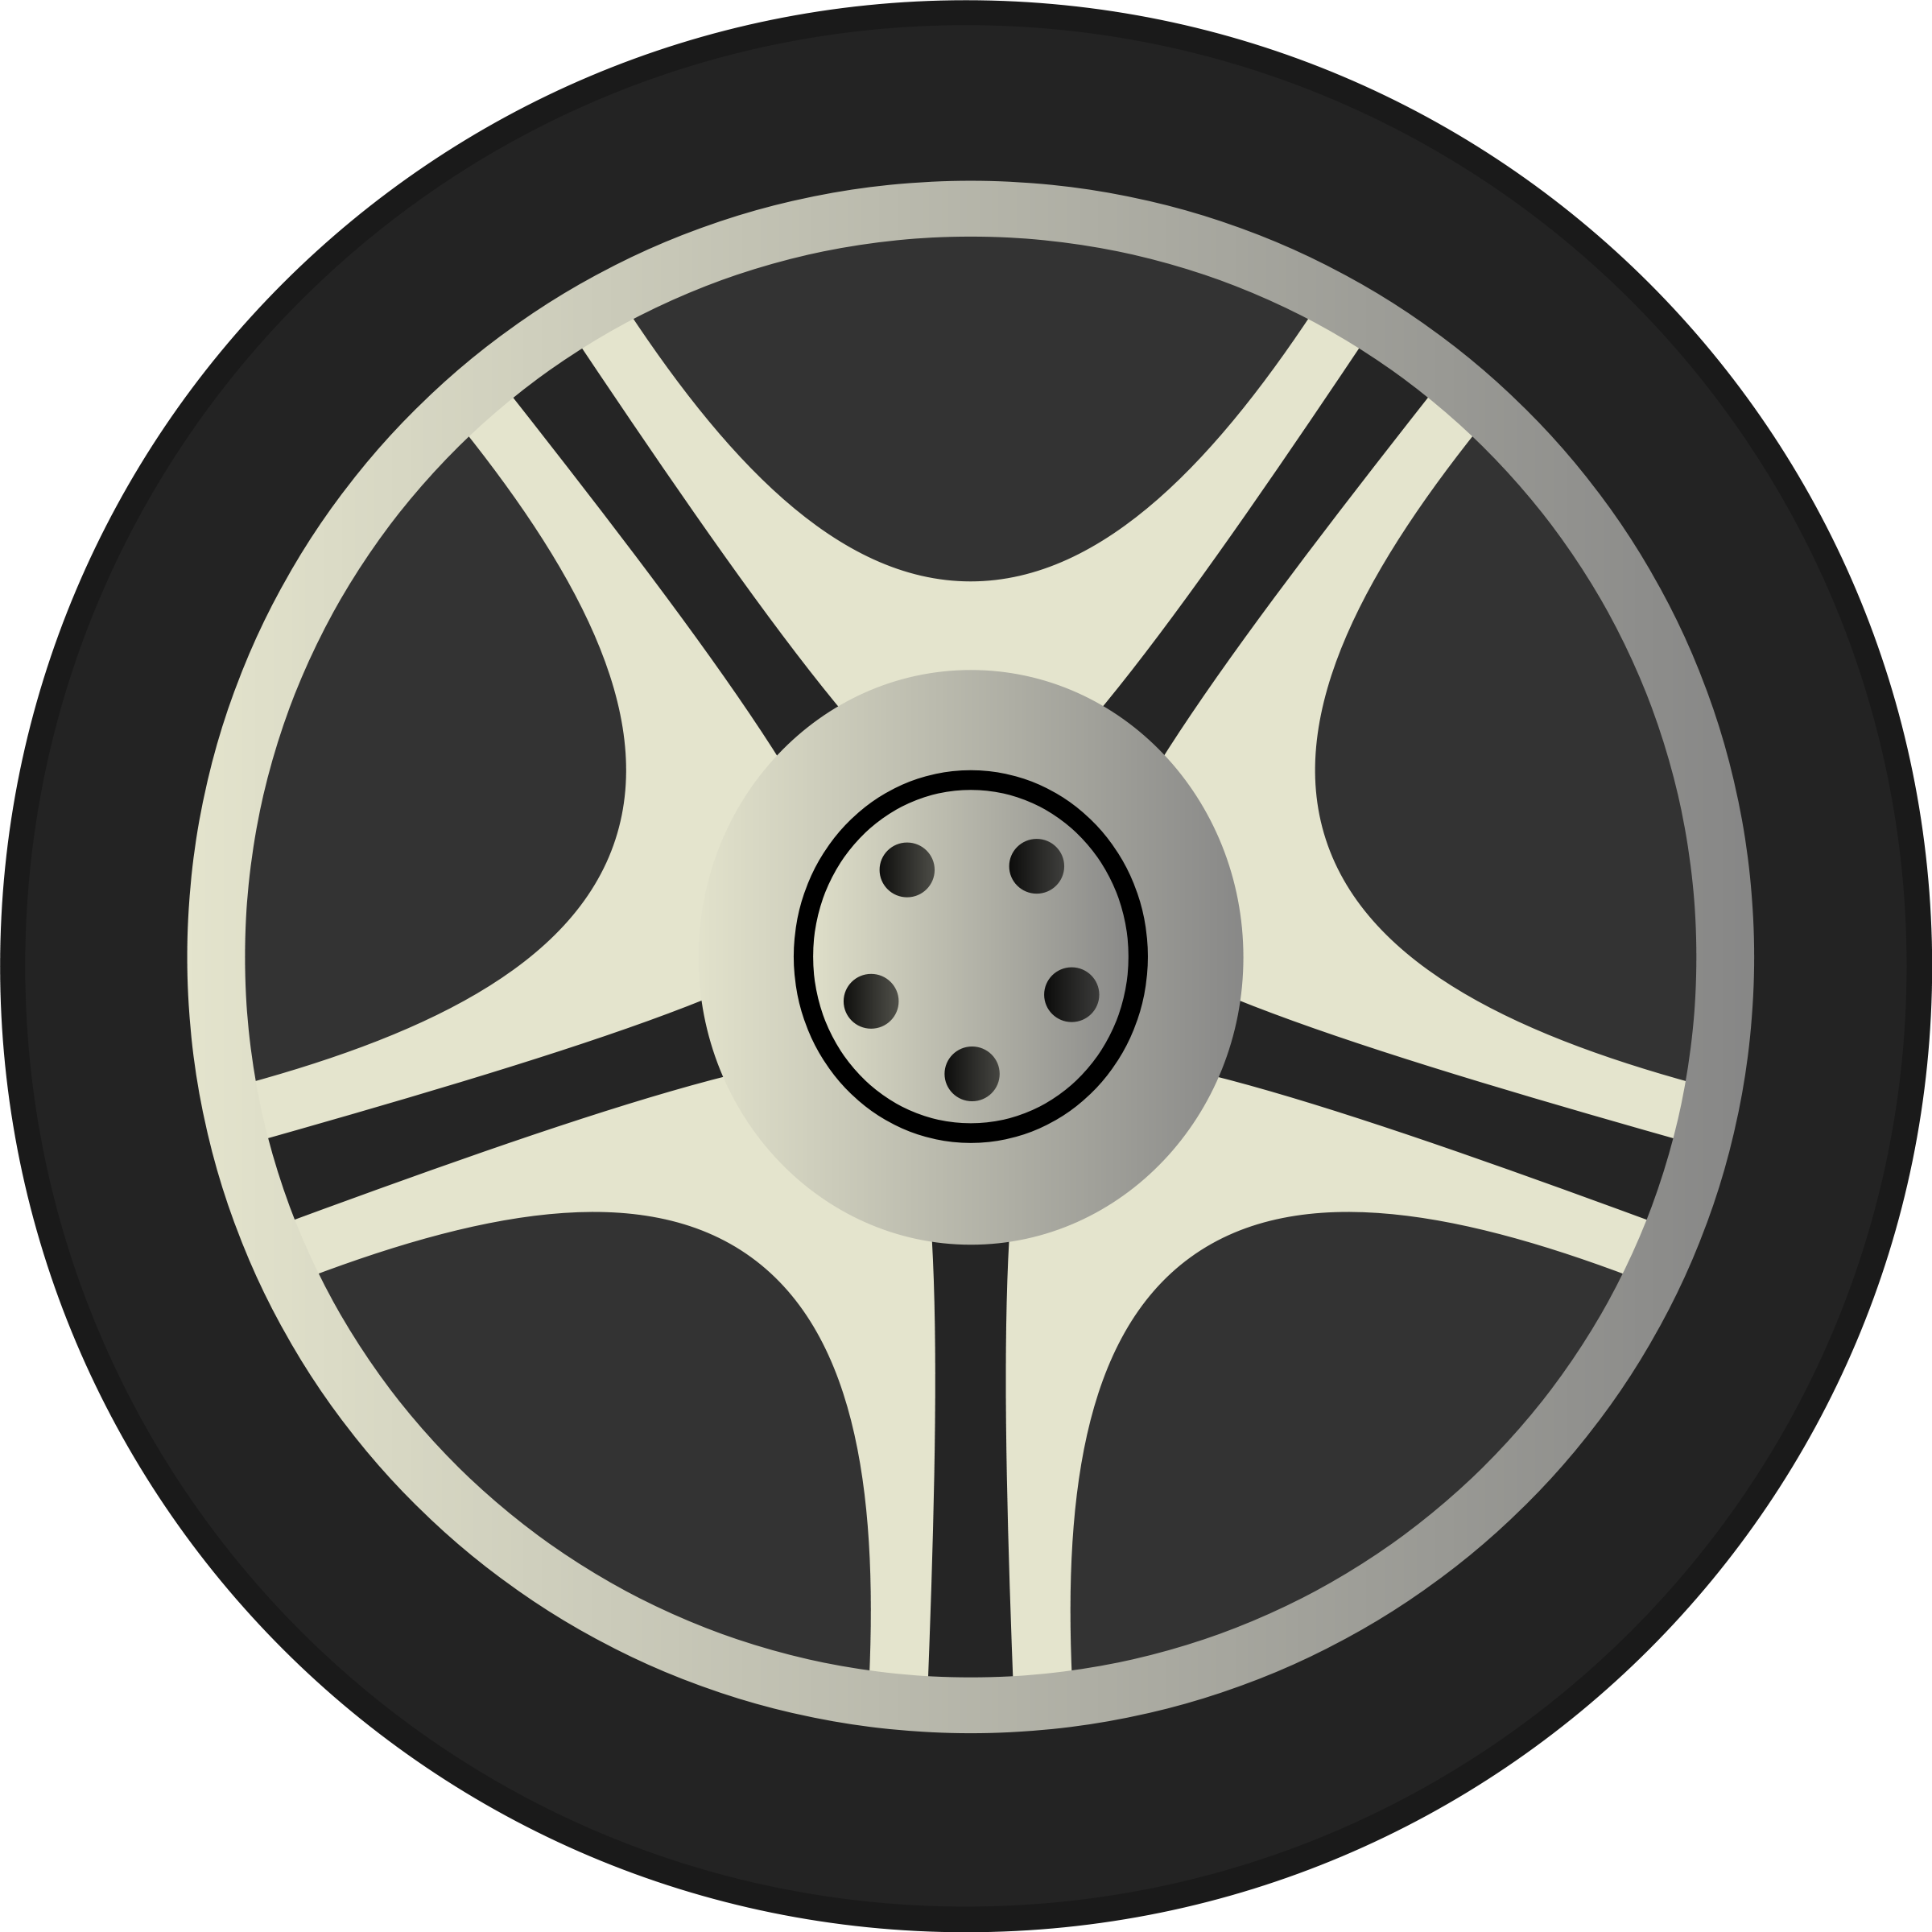 Two car tires clipart.